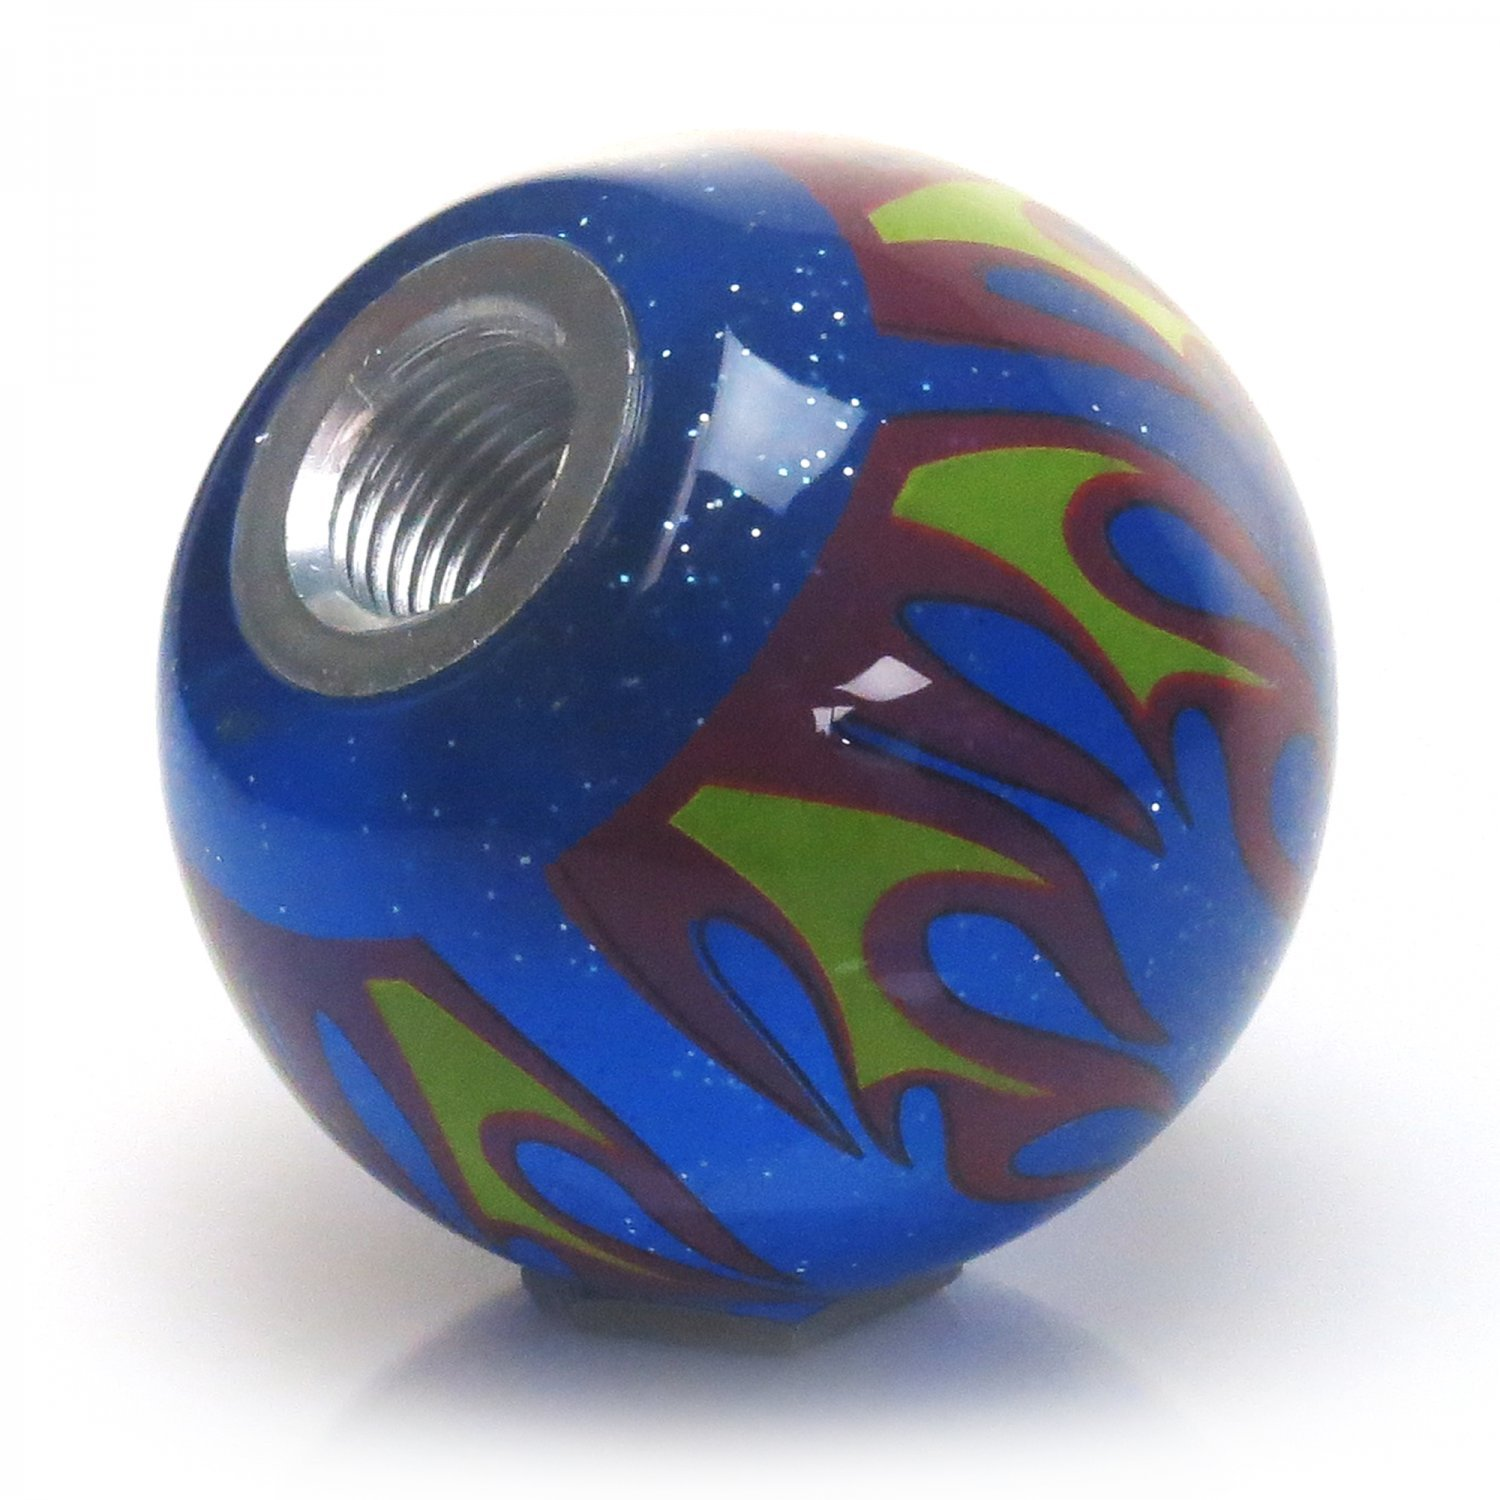 American Shifter 244540 Blue Flame Metal Flake Shift Knob with M16 x 1.5 Insert Green Ball #5